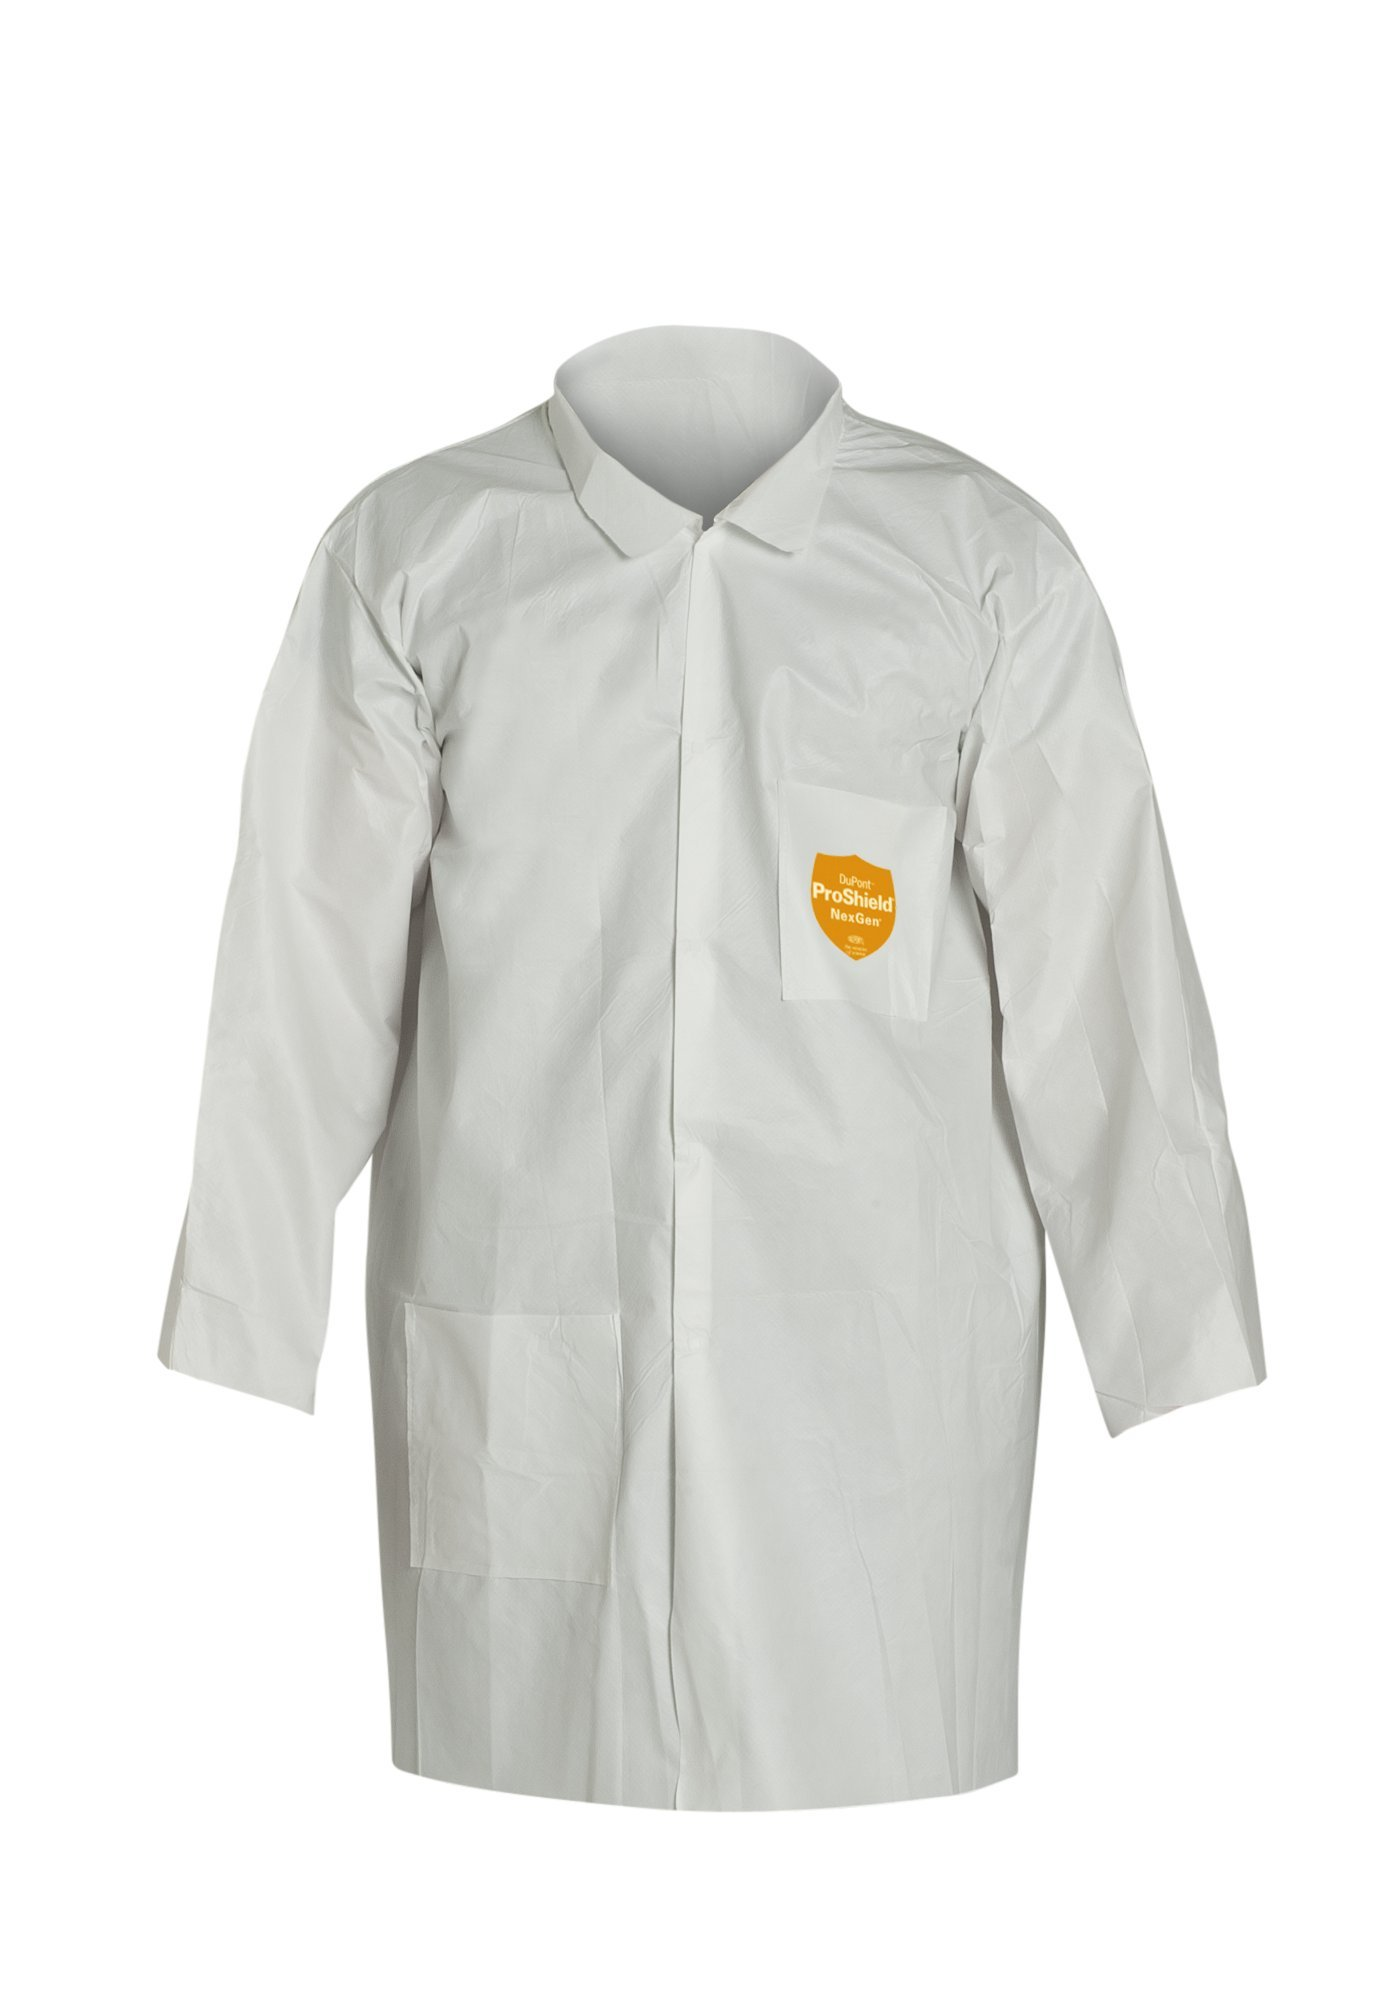 DuPont ProShield 60 NG212S Disposable Lab Coat with Elastic Cuff, White, 4X-Large (Case of 30)